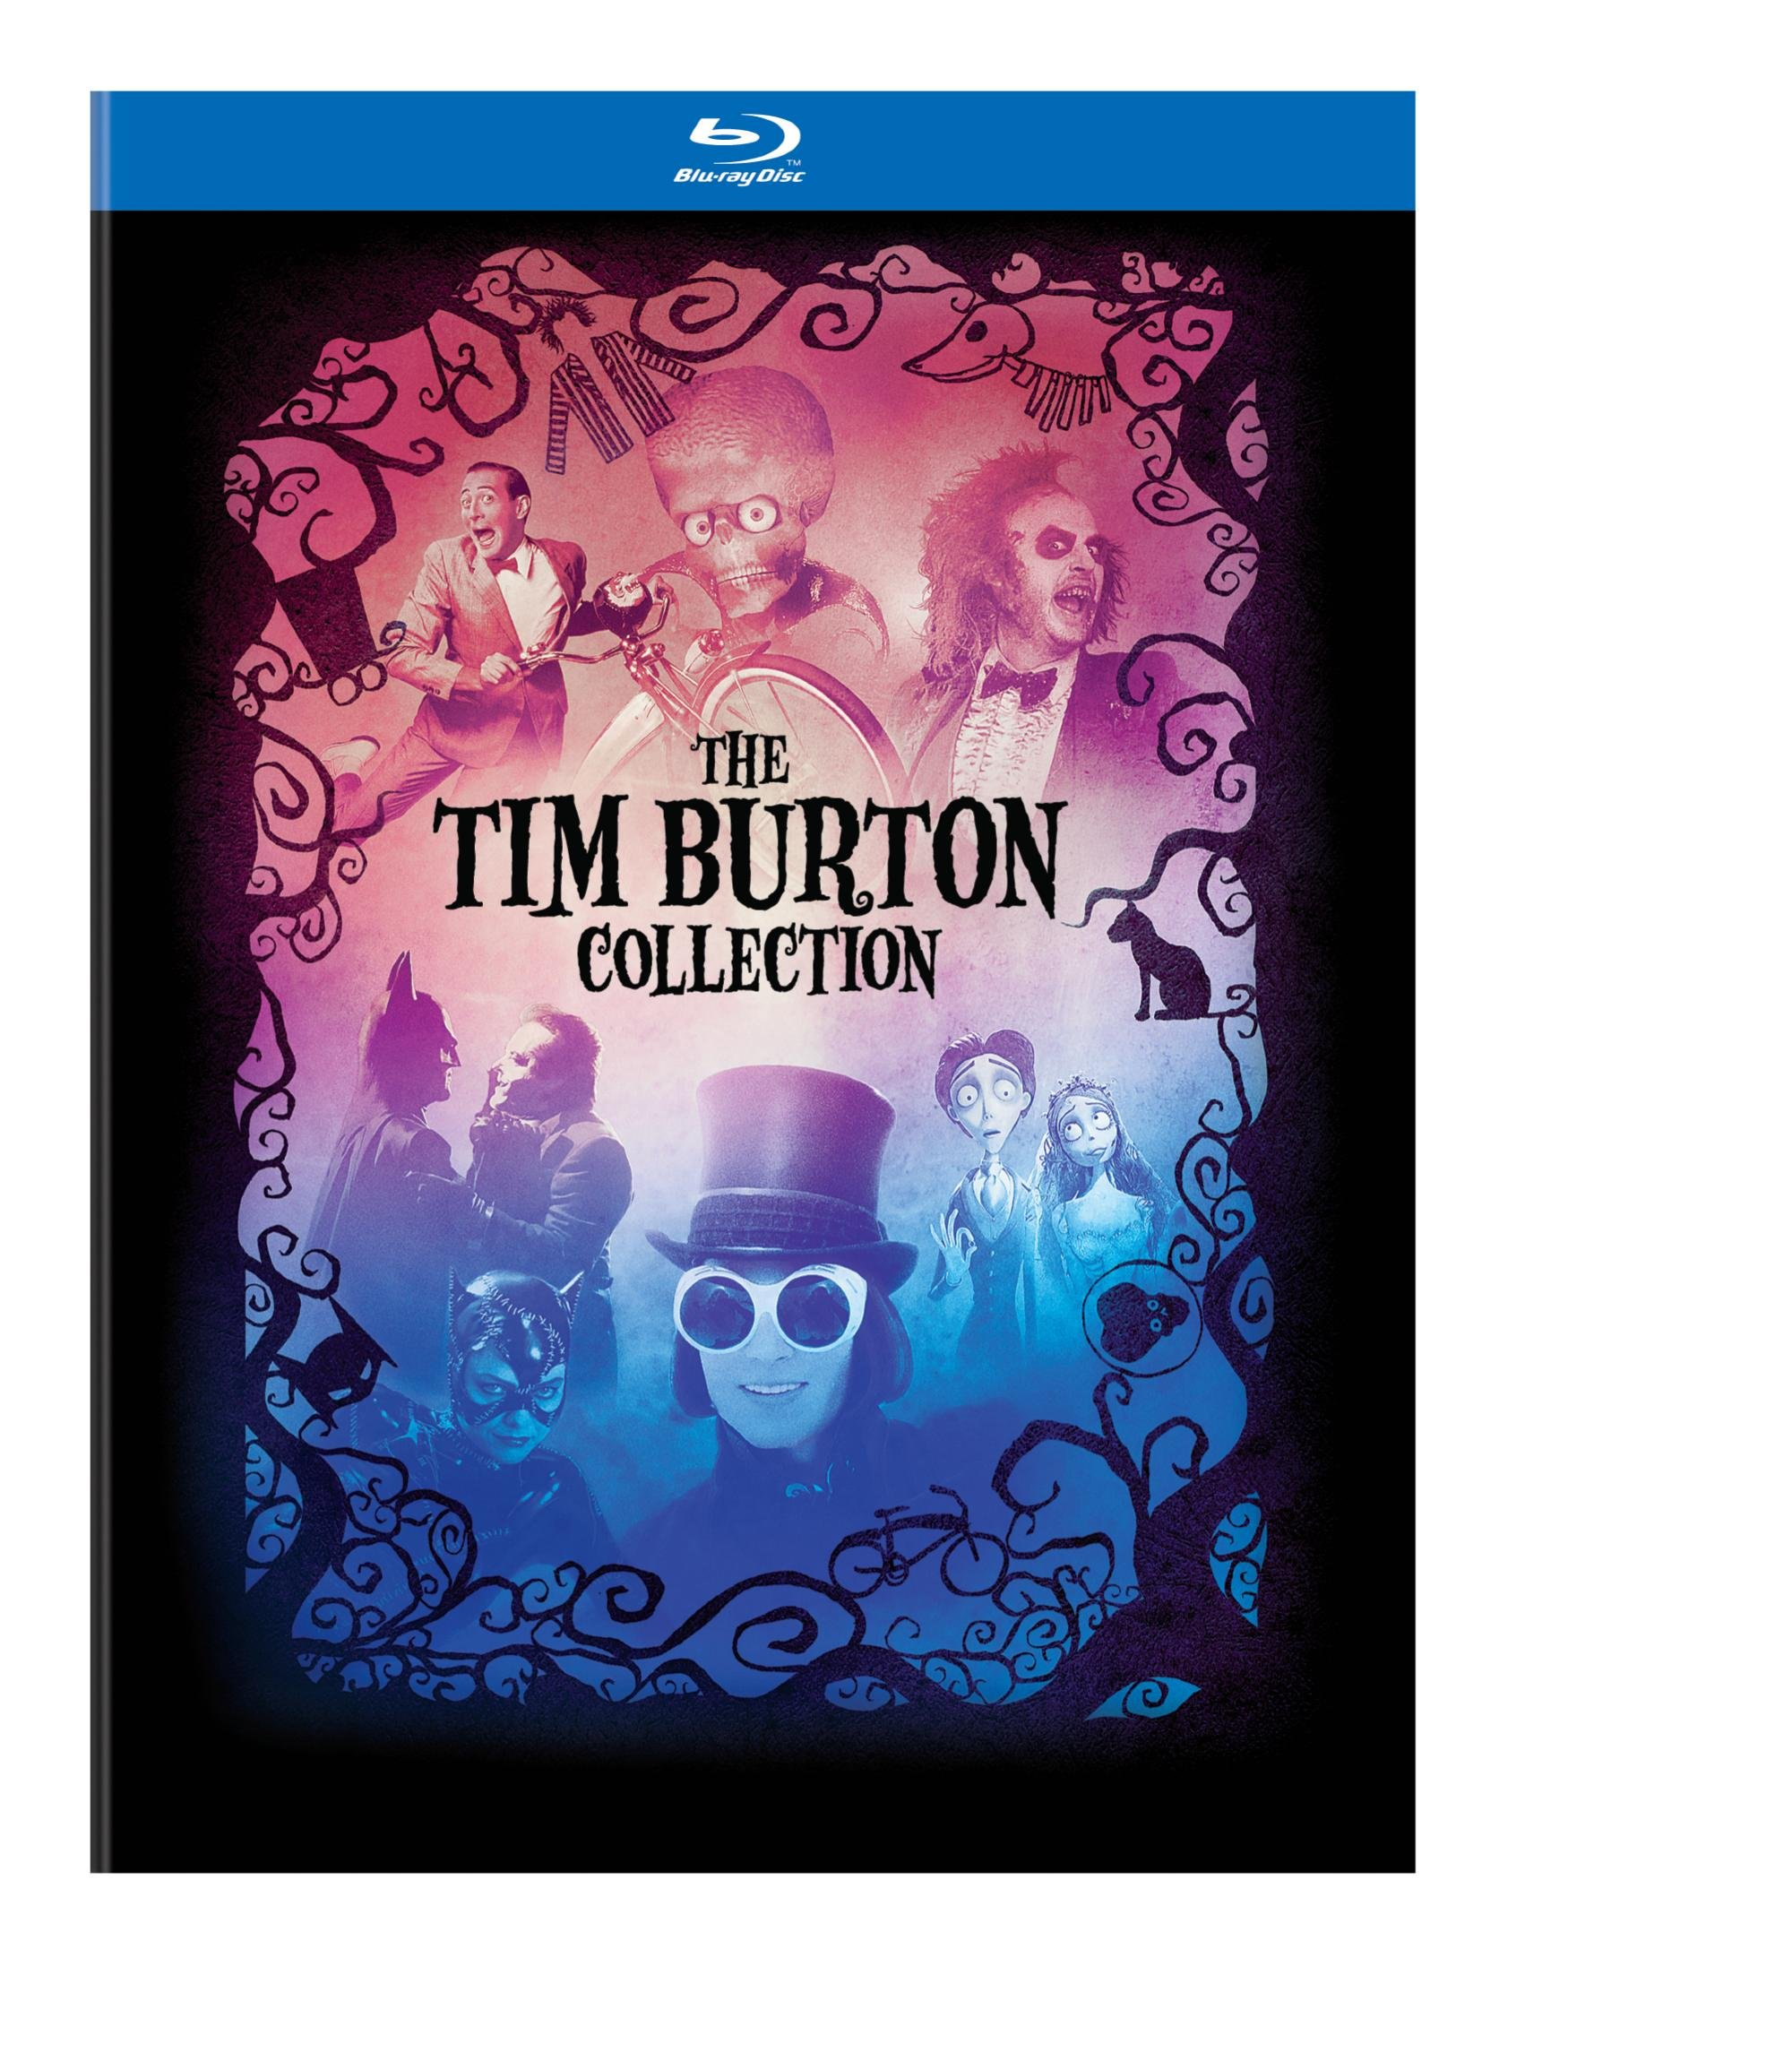 The Tim Burton Collection & Hardcover Book [Blu-Ray] 4